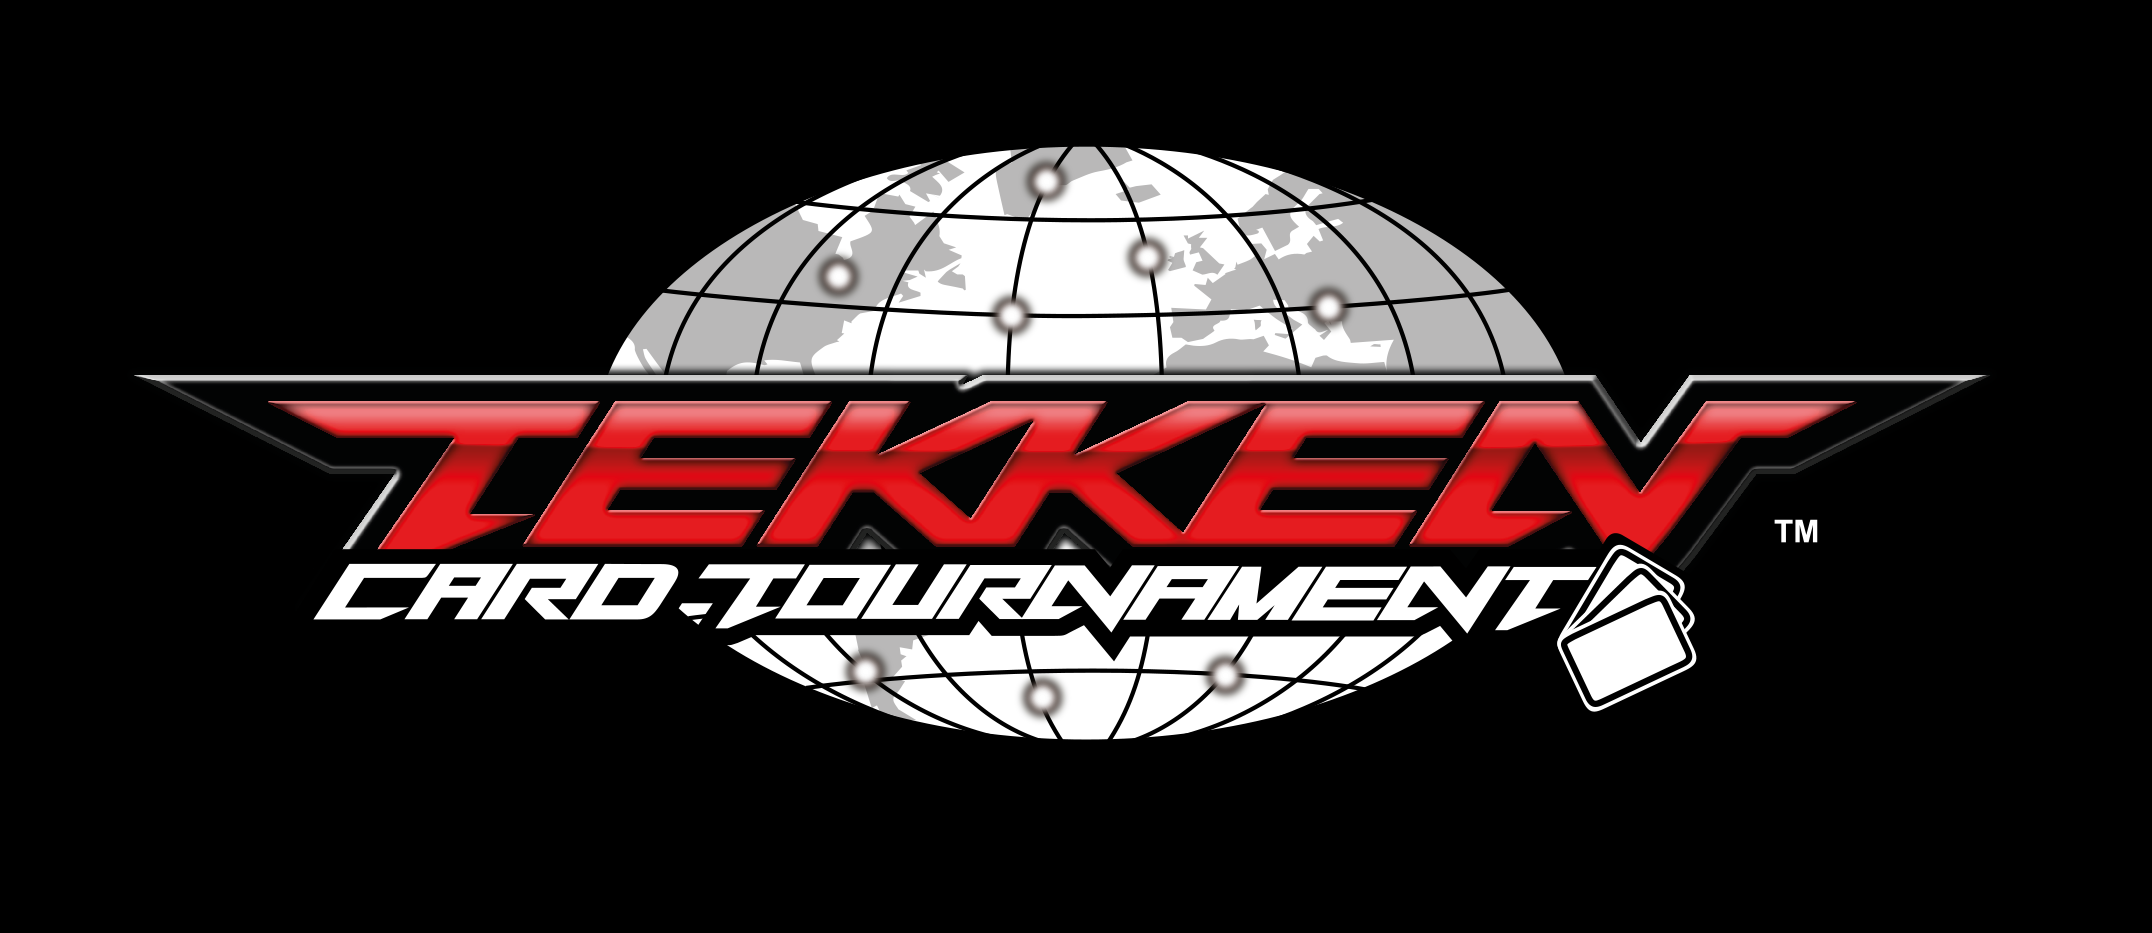 Tekken-Card-Tournament versione 3 punto 0 disponibile in download gratuito